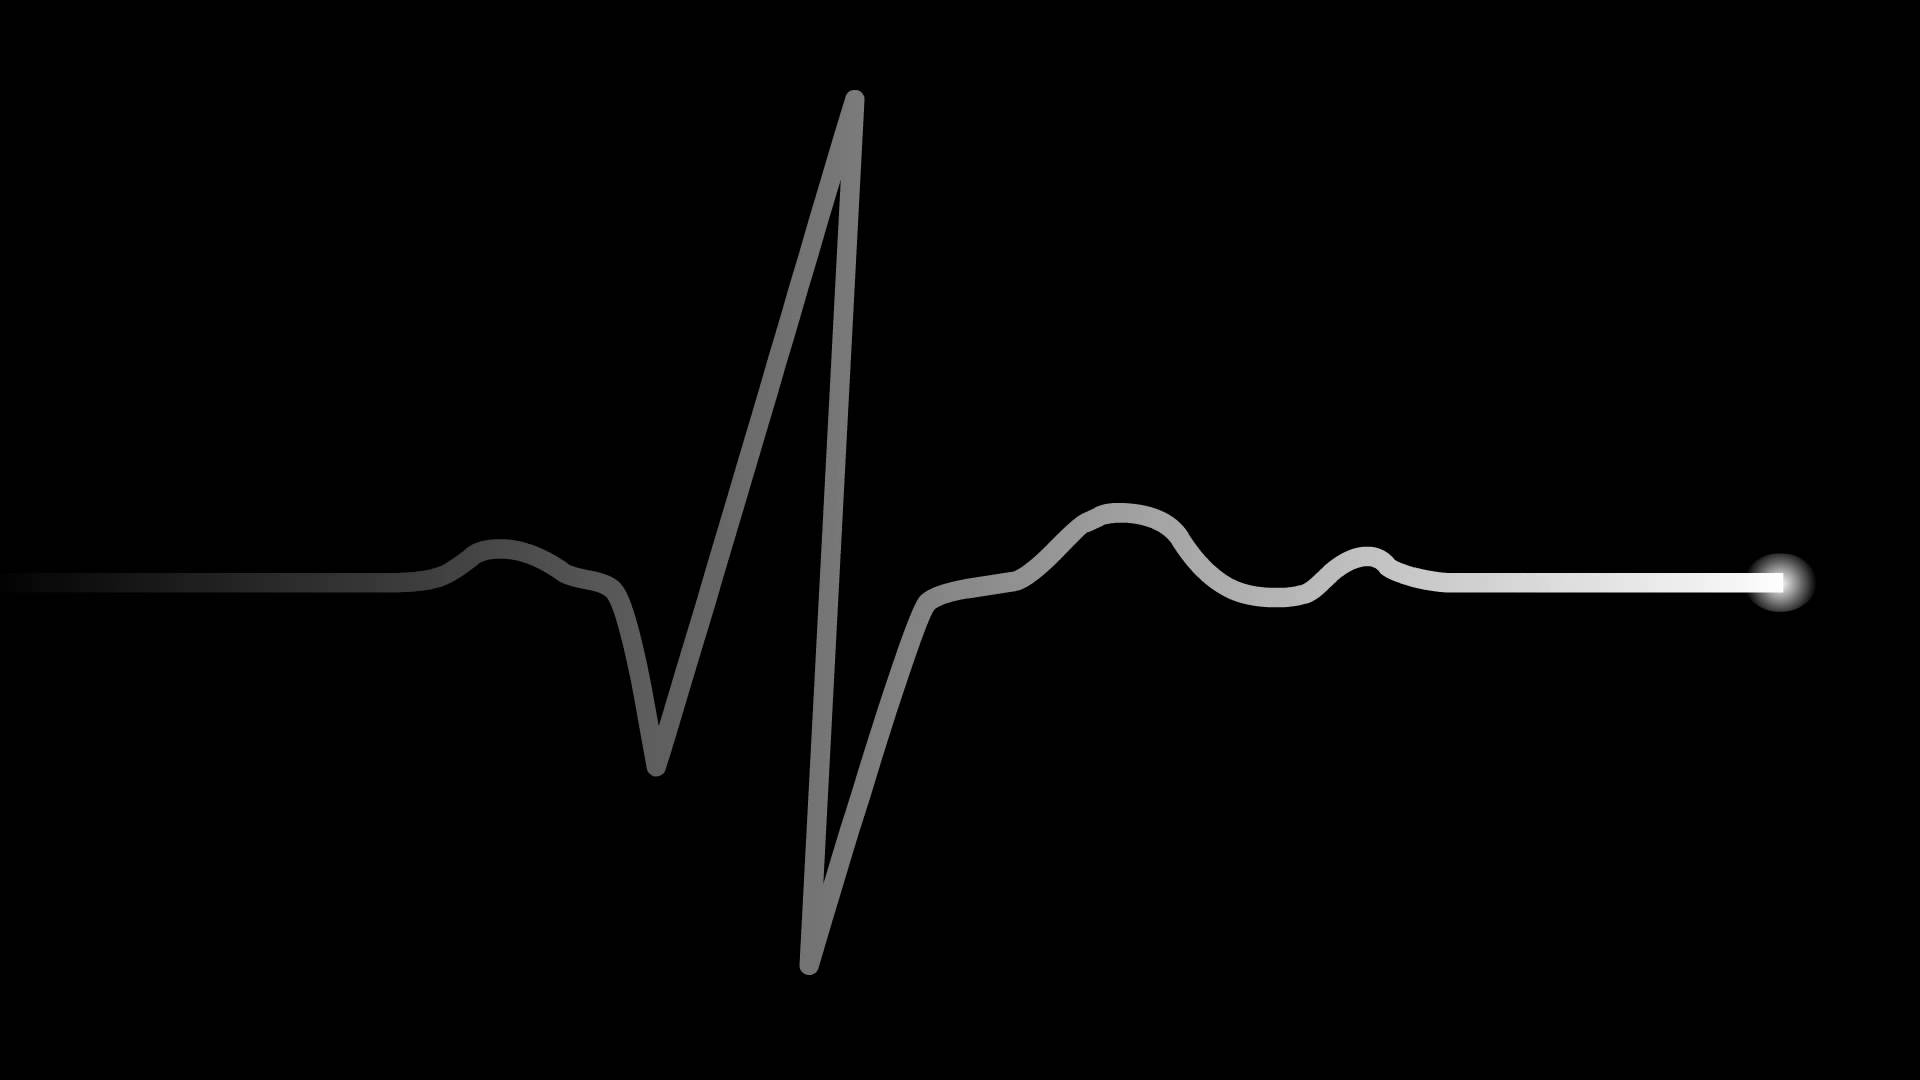 Images of Heartbeat   1920x1080